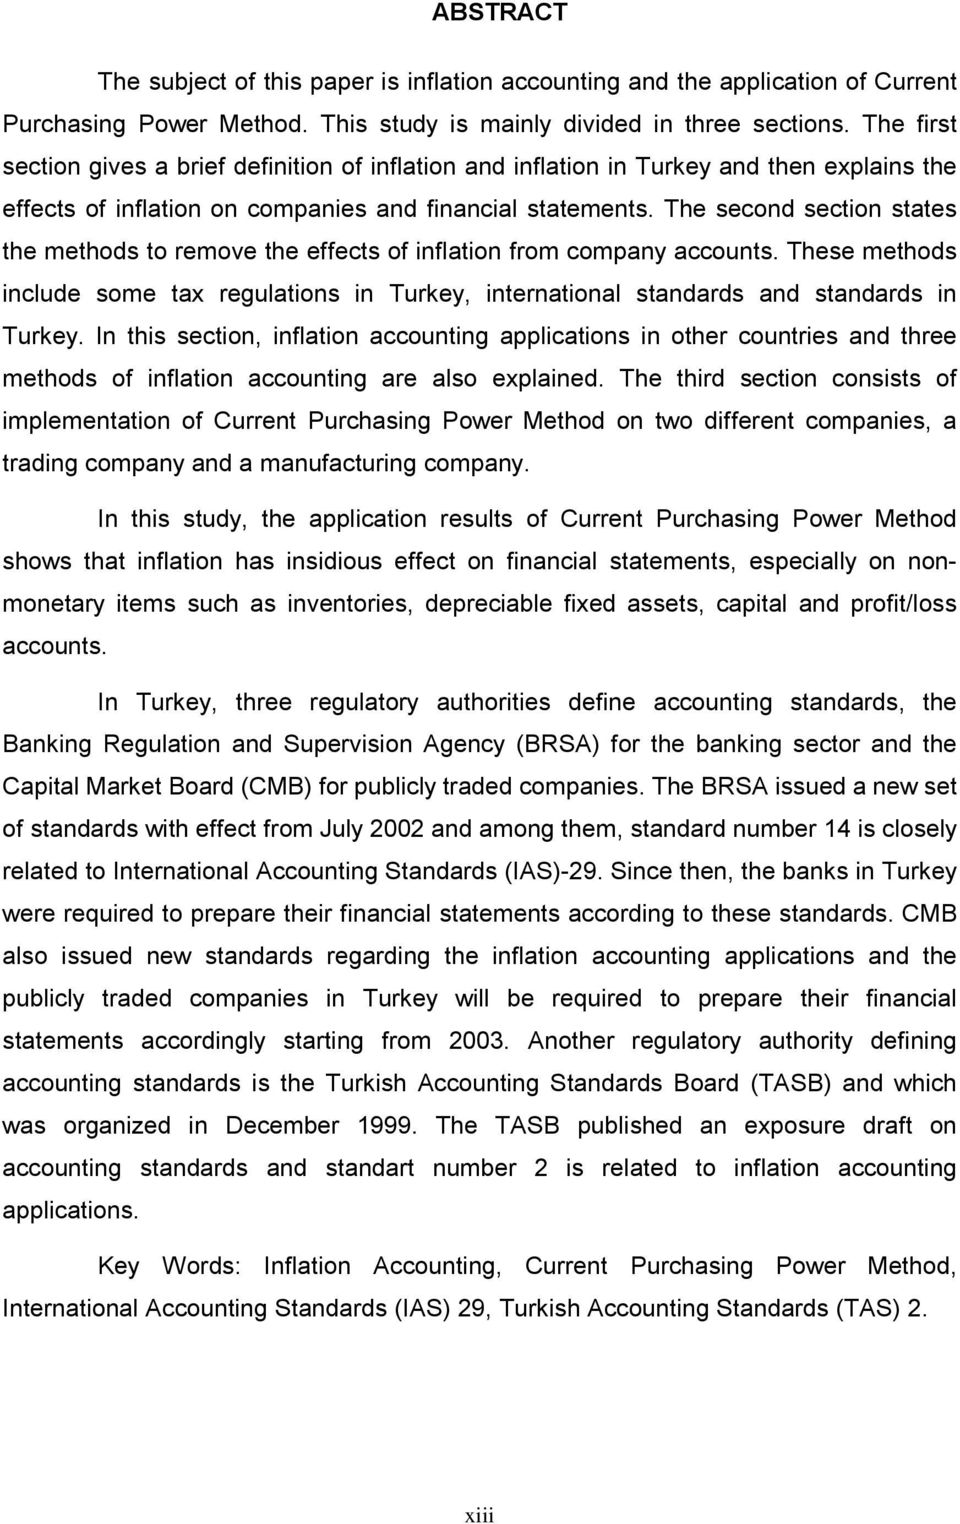 The second section states the methods to remove the effects of inflation from company accounts. These methods include some tax regulations in Turkey, international standards and standards in Turkey.